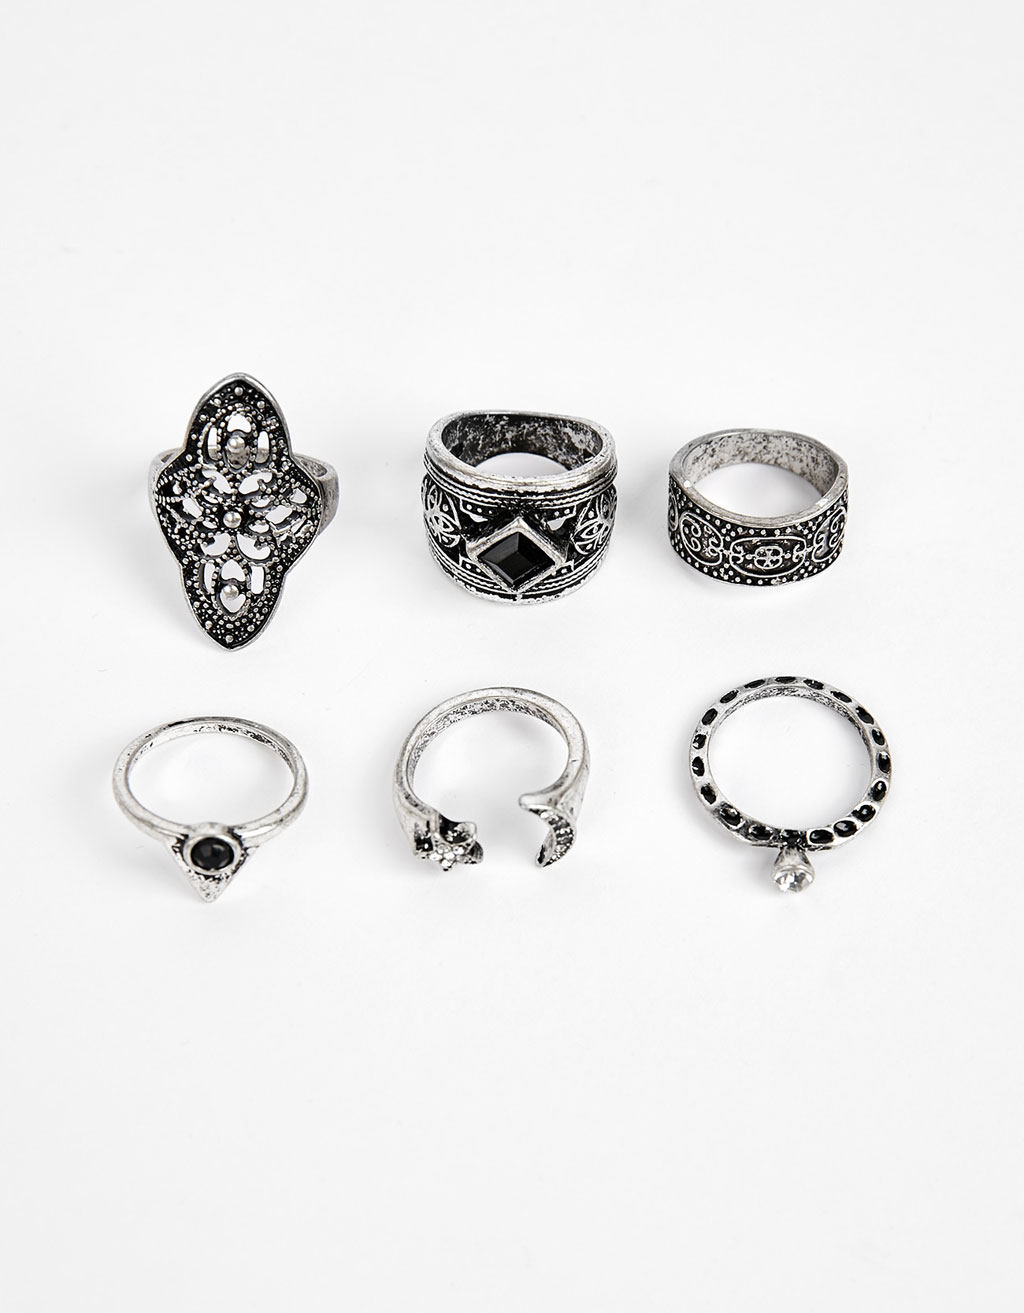 Set of bohemian crystal rings